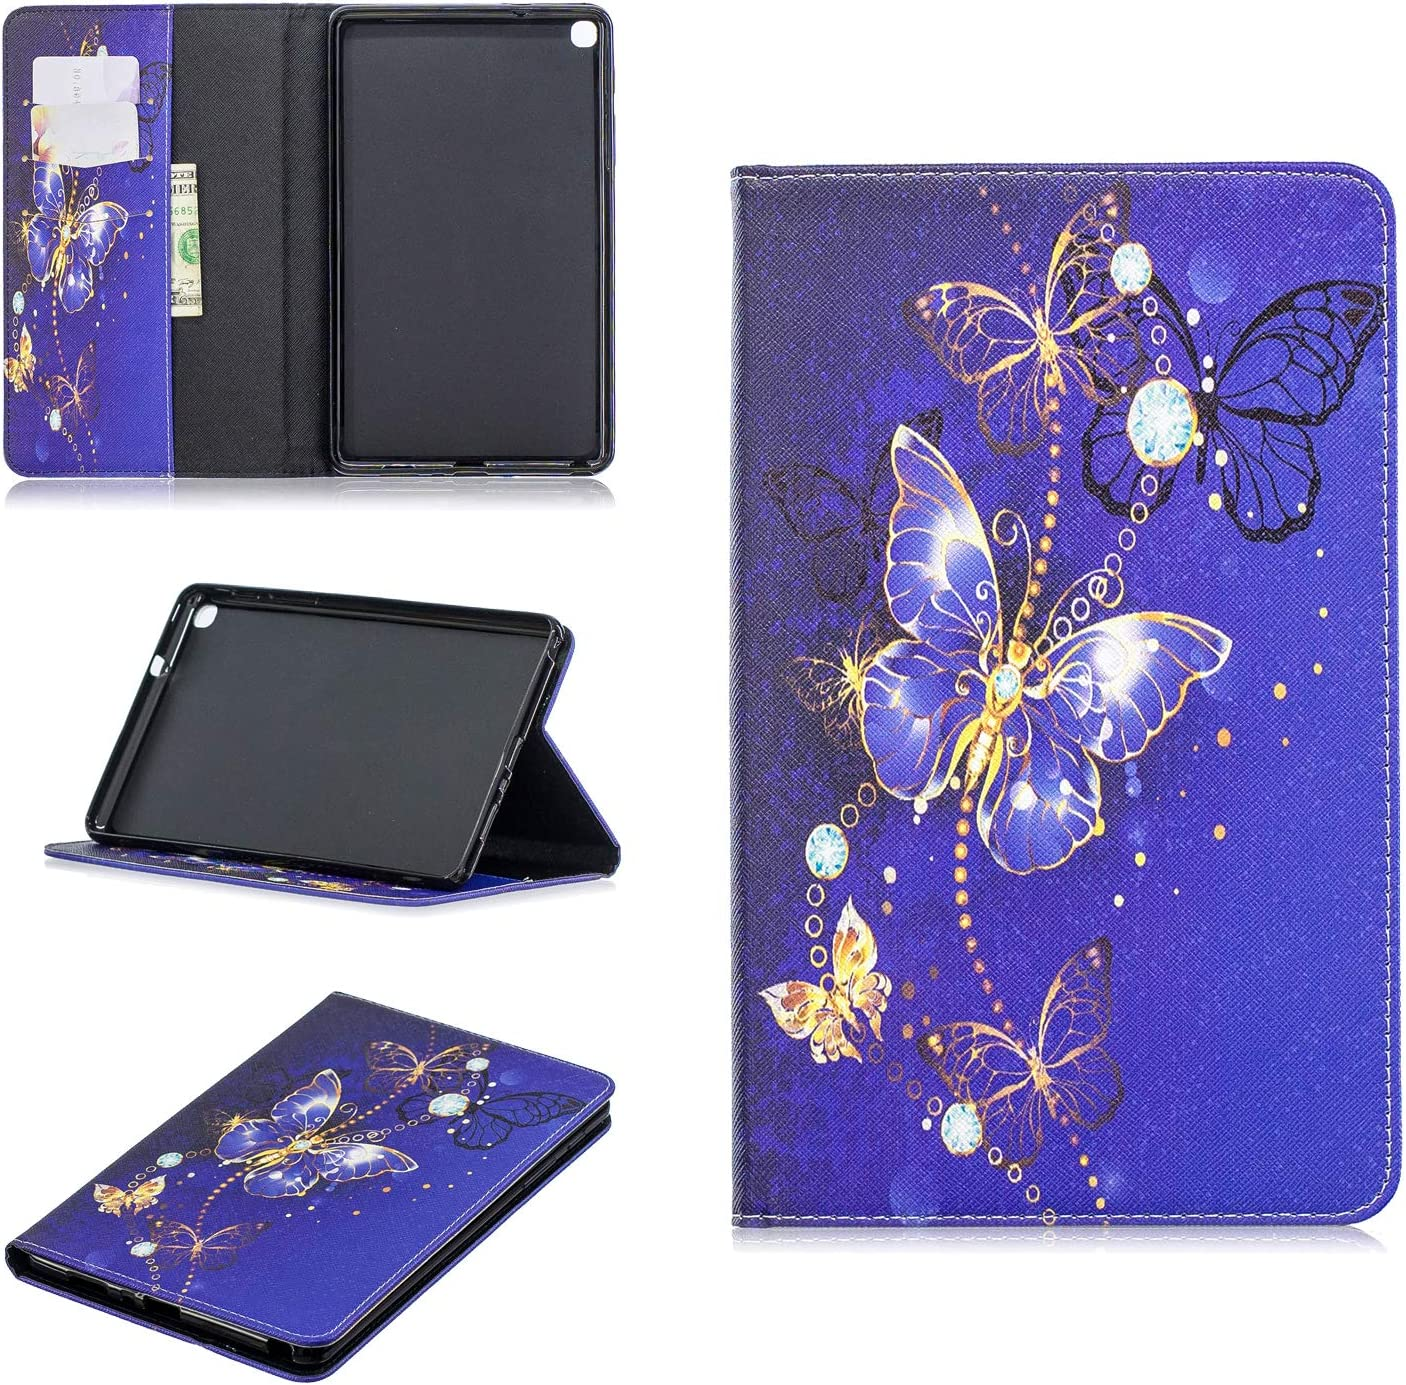 2019 with S Pen SM-P200,Colorful Print Smart Magnetic Flip PU Leather Card Slots Shockproof Soft Rubber Stand Tablet Case,Dont Touch Me Cfrau Wallet Case with Black Stylus for Samsung Tab A 8.0